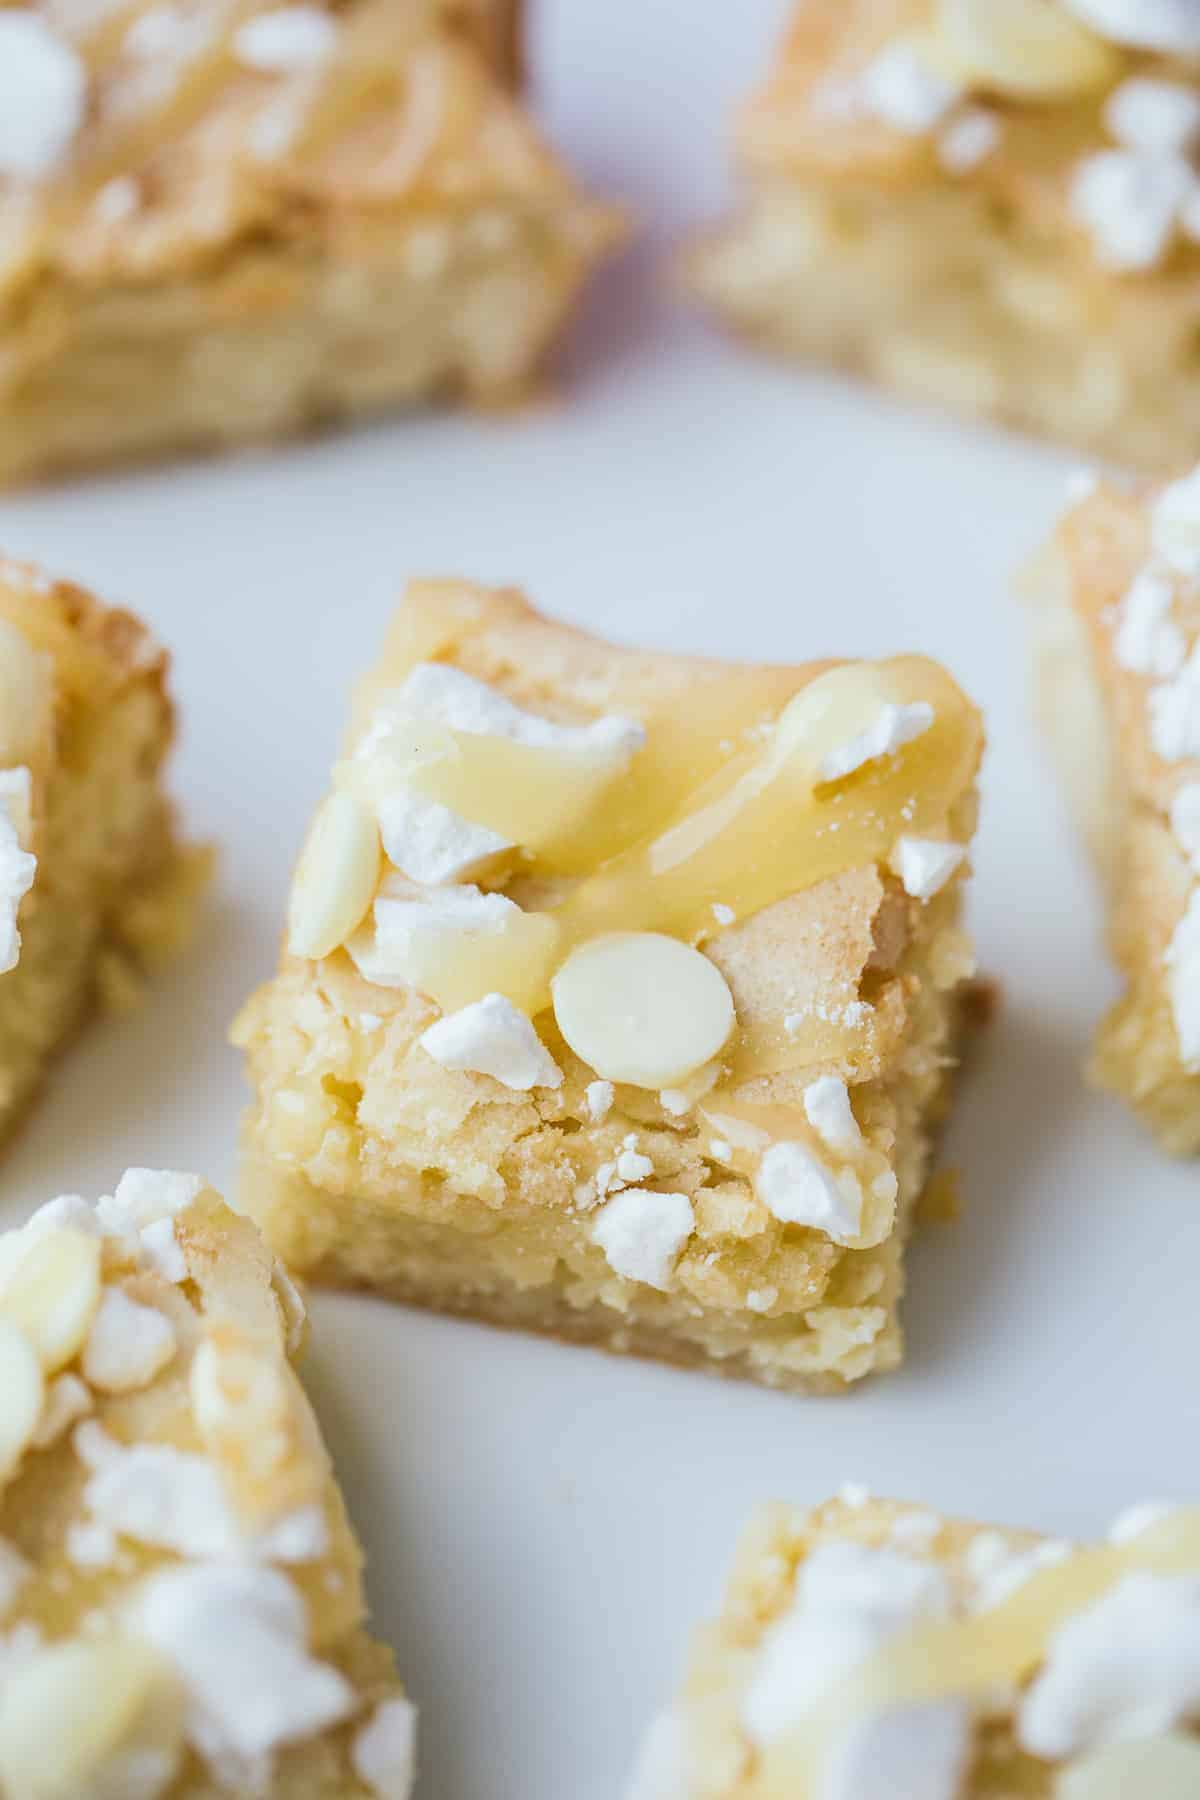 A white chocolate blondie with lemon curd and meringue.